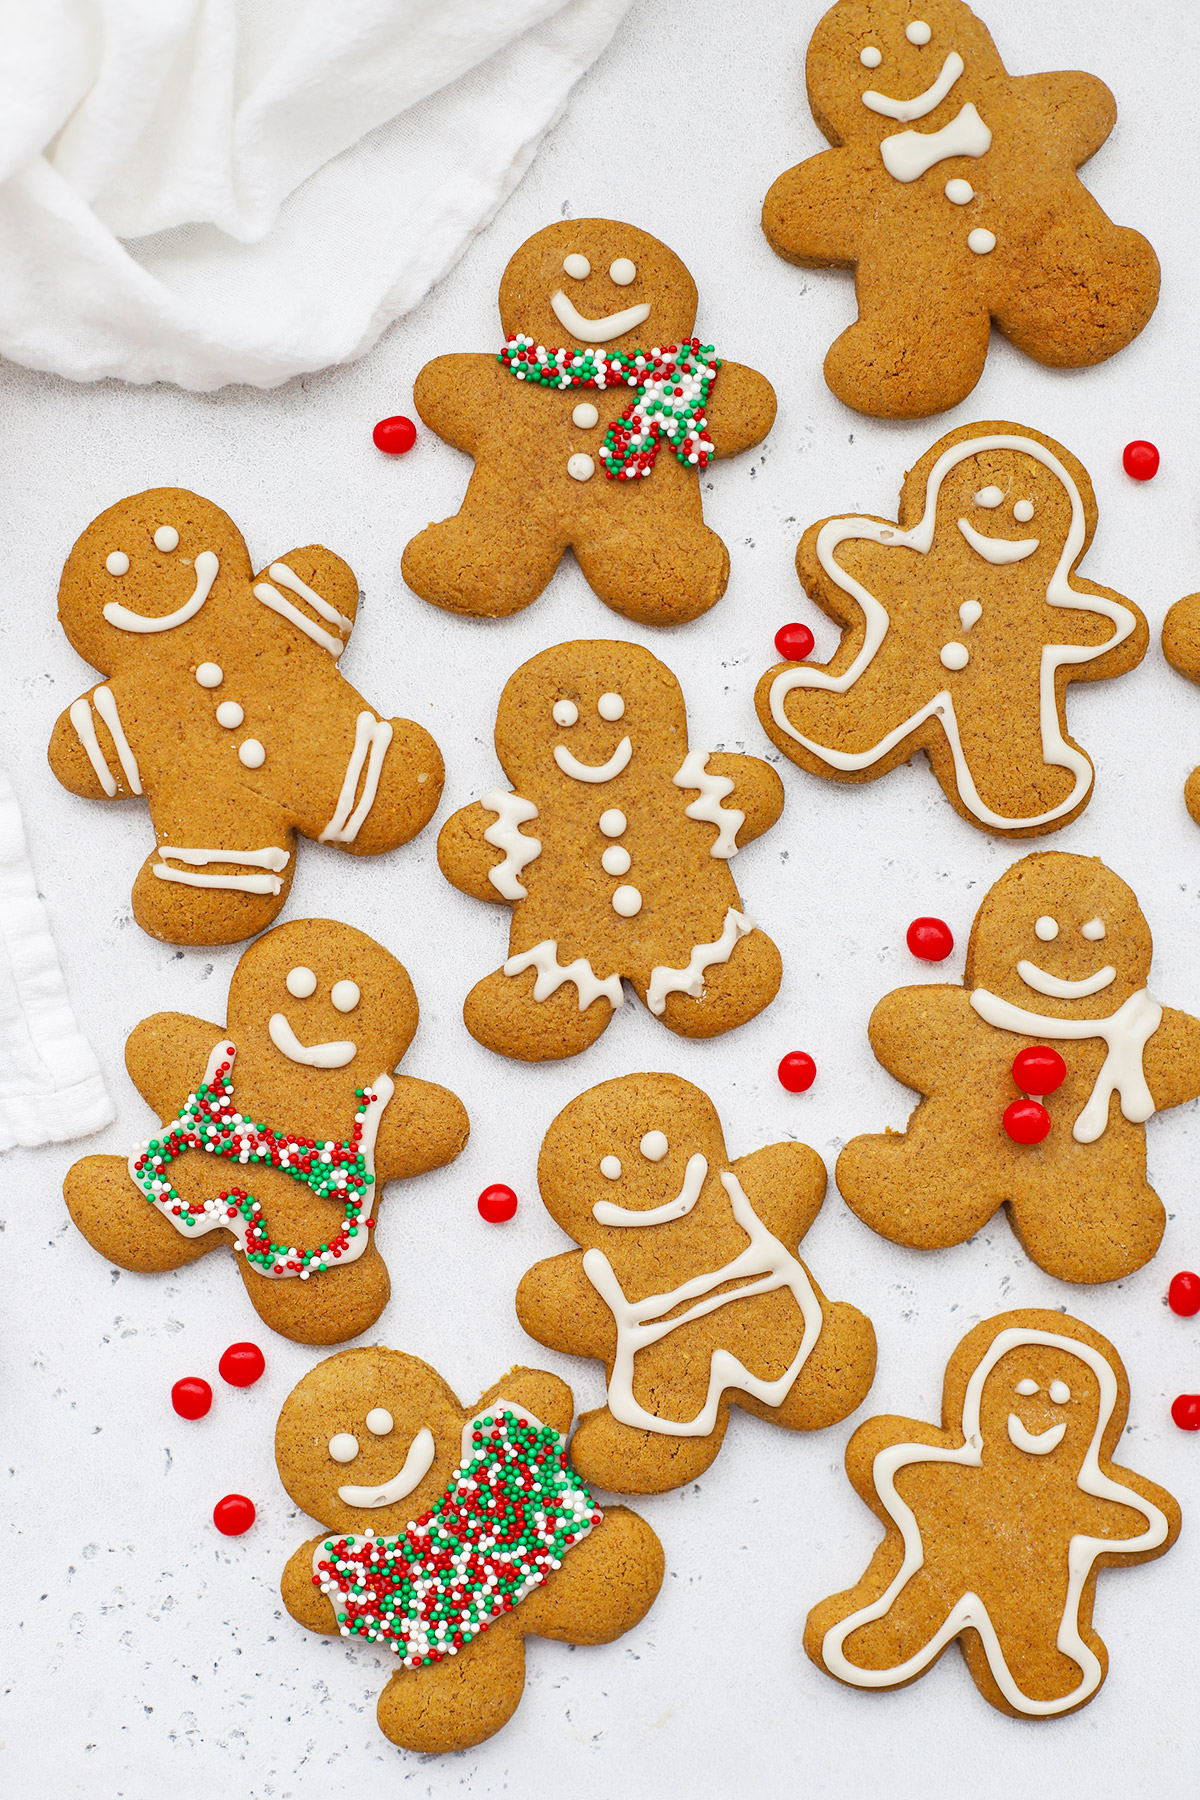 Overhead view of decorated gluten free gingerbread men cookies on a white background